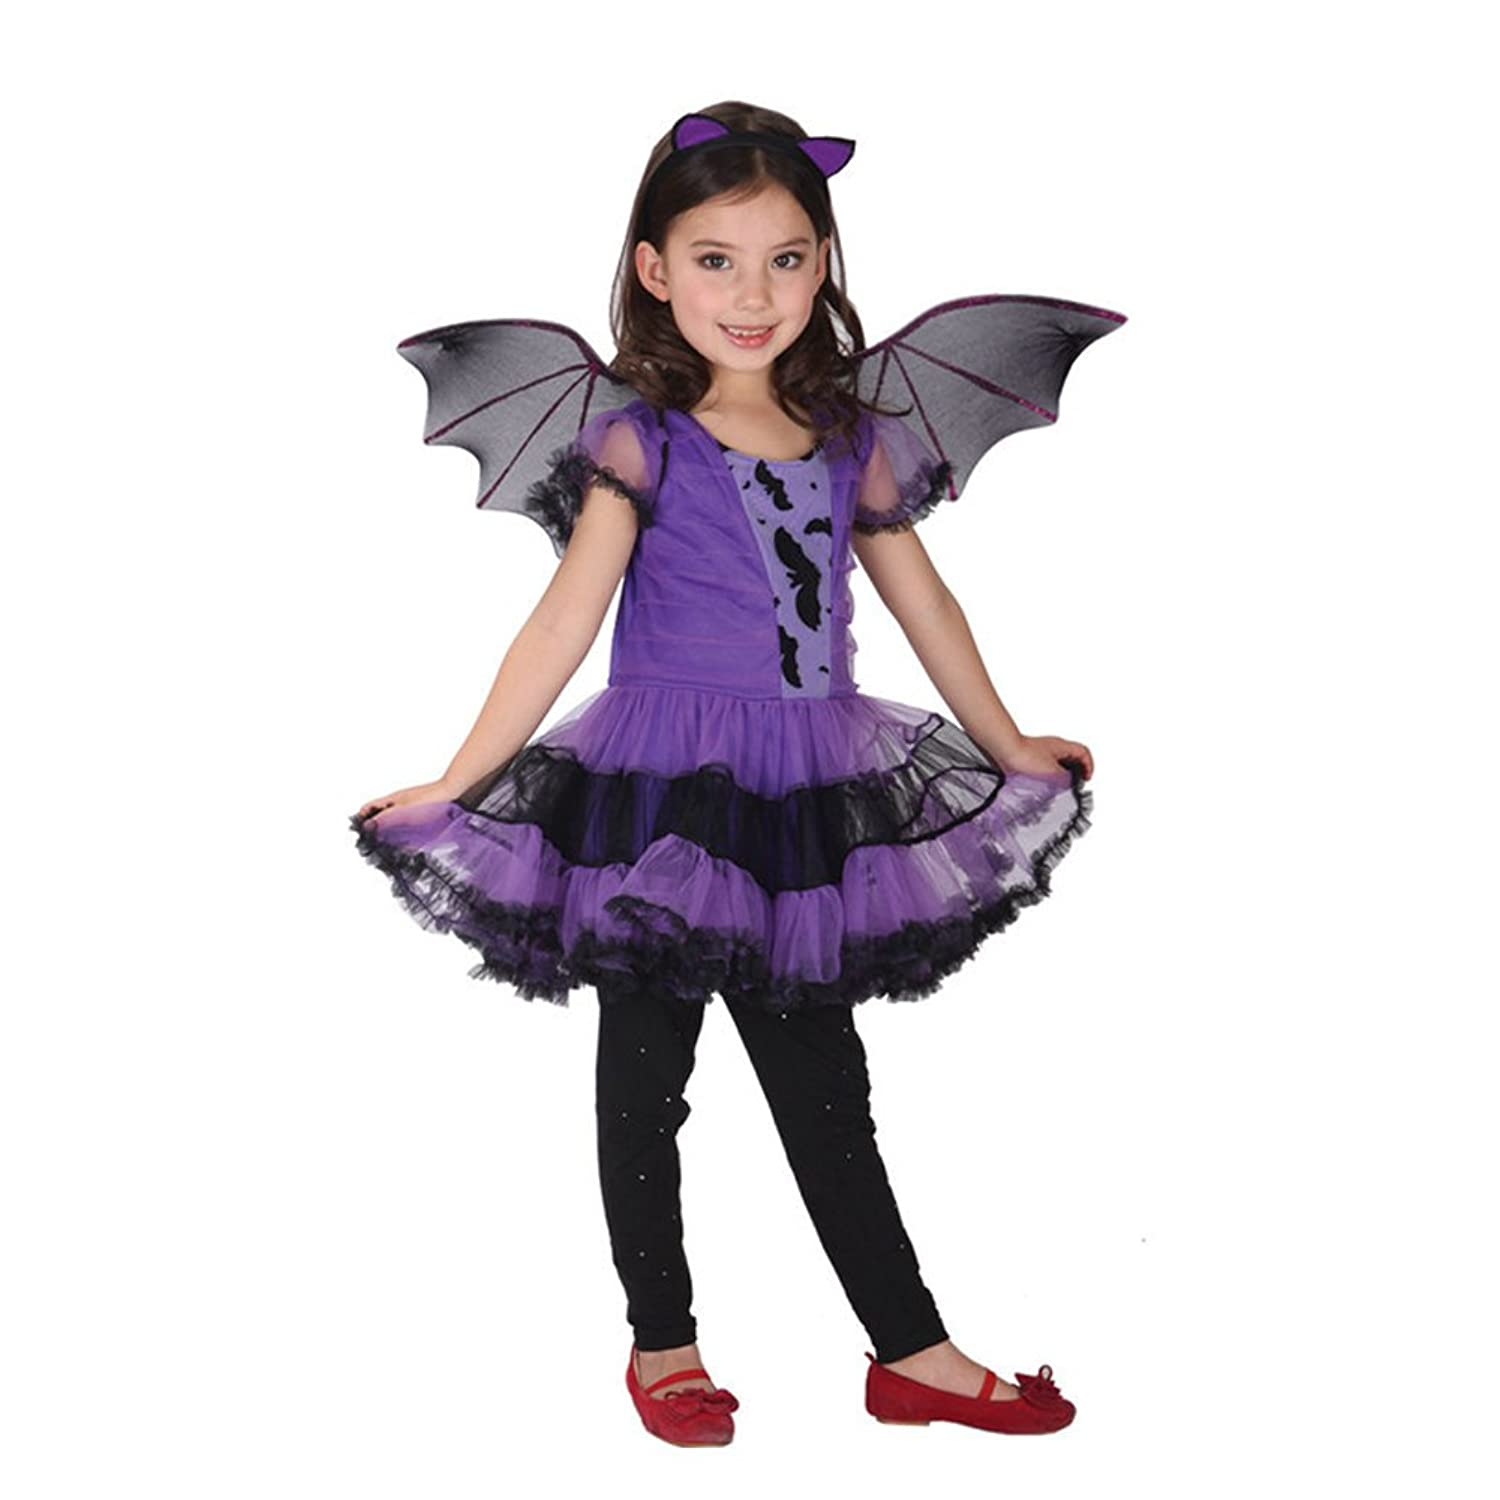 Amazon.com Amurleopard Girls Fancy Dress Bat Costume Kids Halloween Cosplay Costume Clothing Sc 1 St Amazon.com  sc 1 st  Germanpascual.Com & Halloween Kids Costumes u0026 Halloween Costume Contest For Kids |Willow ...